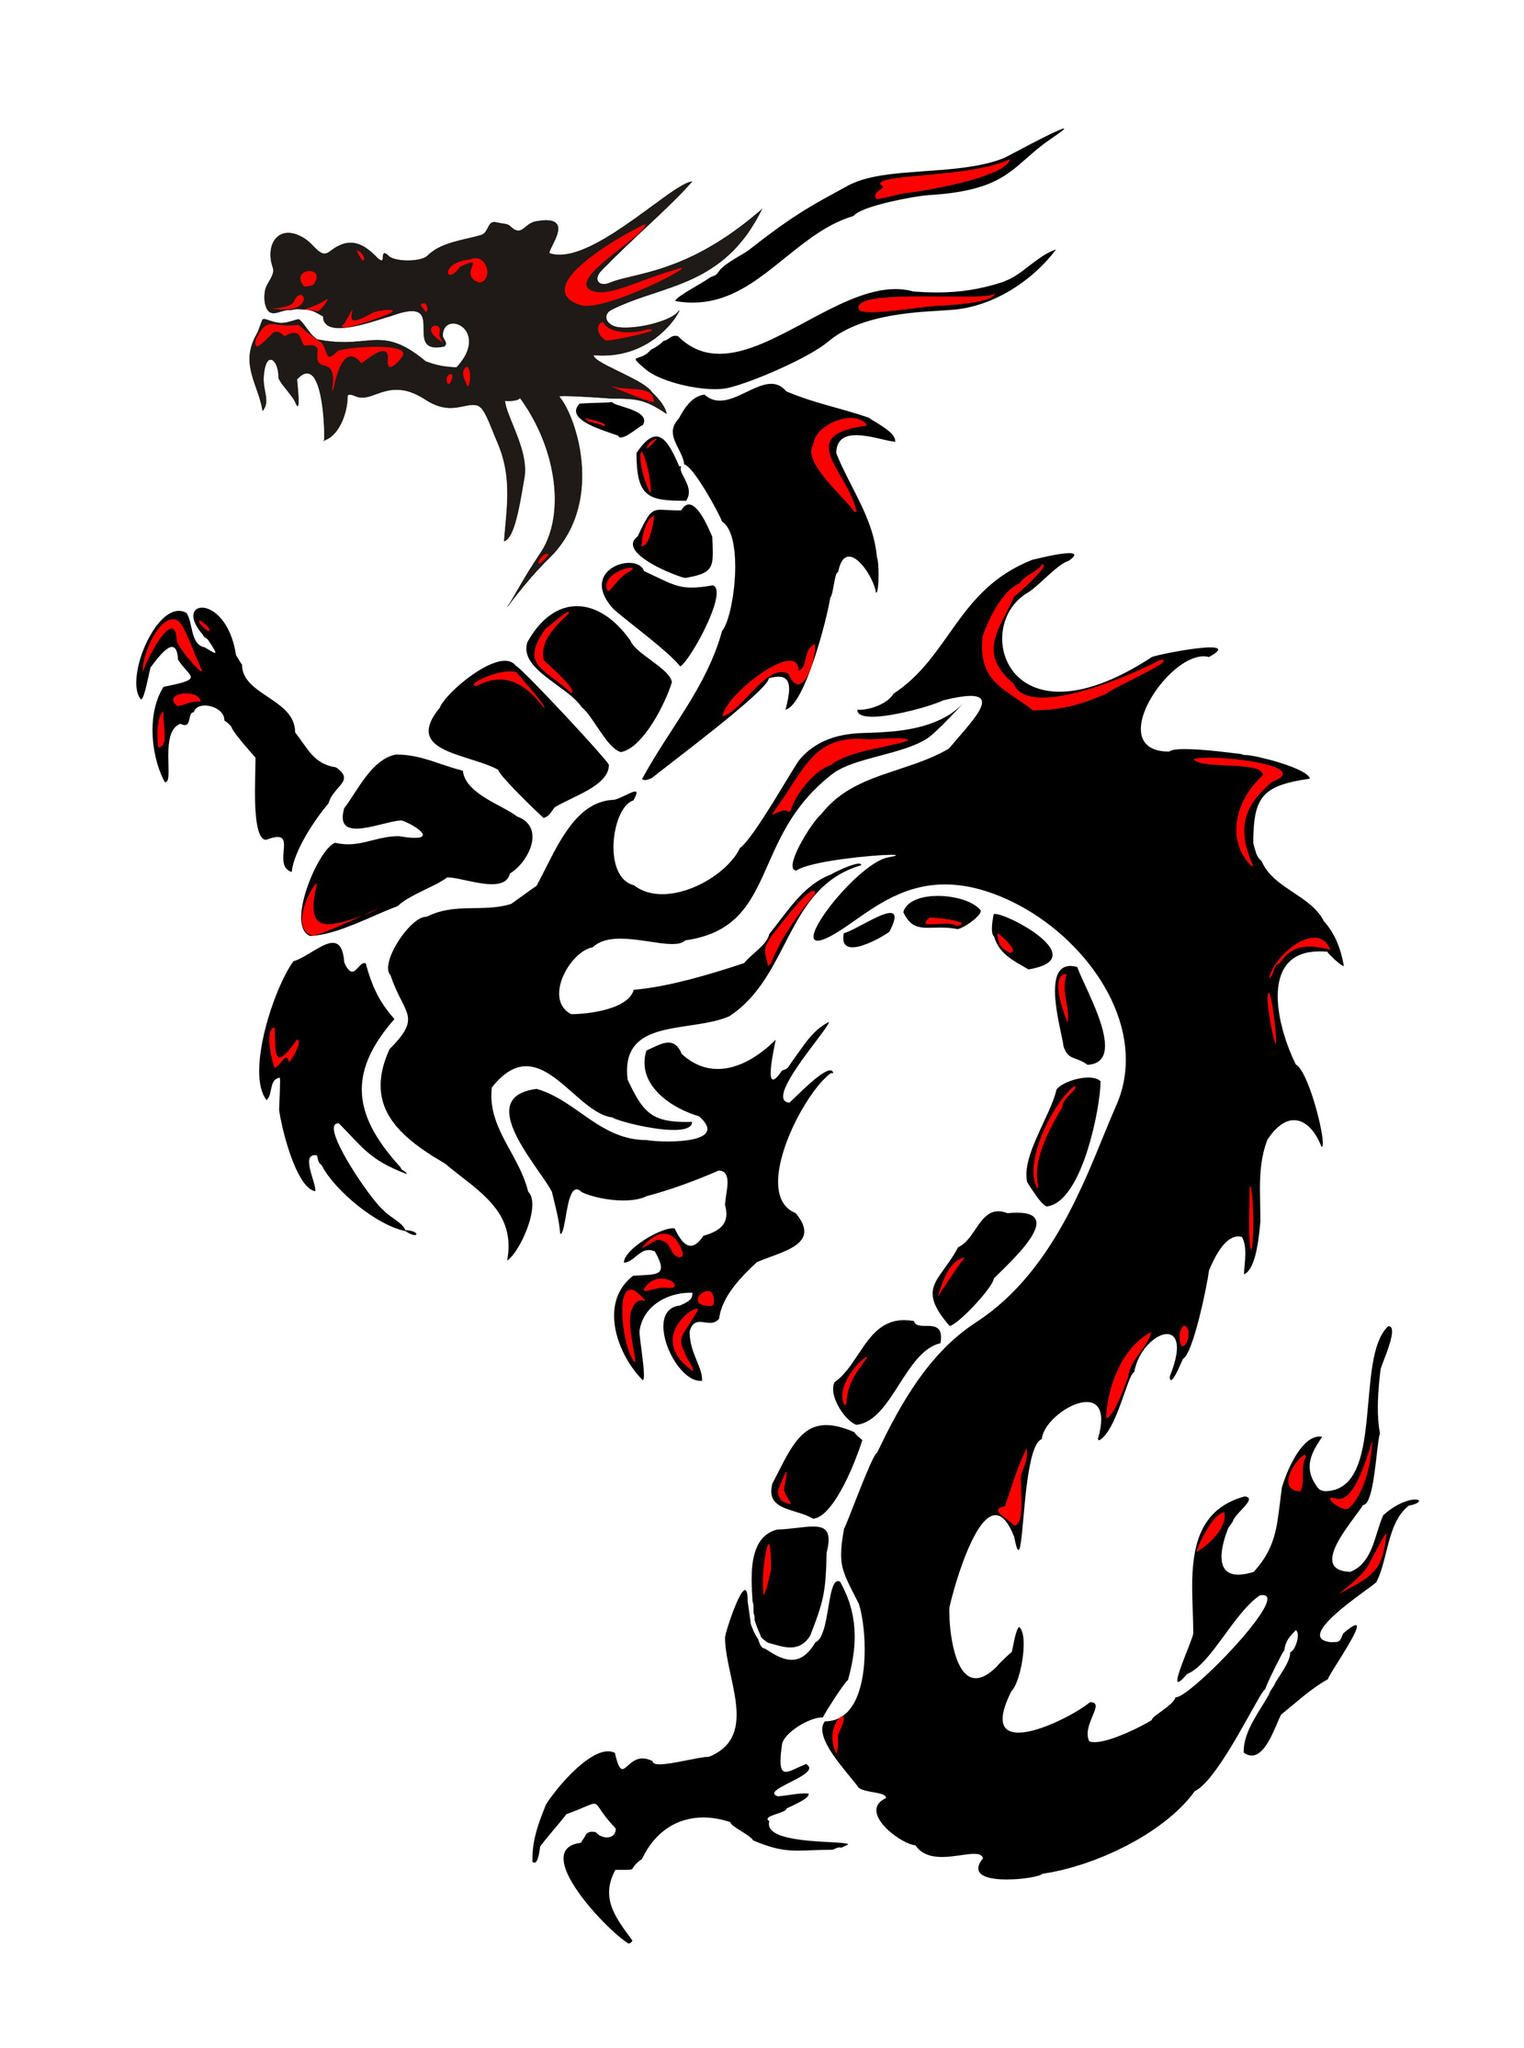 Dragon Tribal dragon tattoos, Dragon silhouette